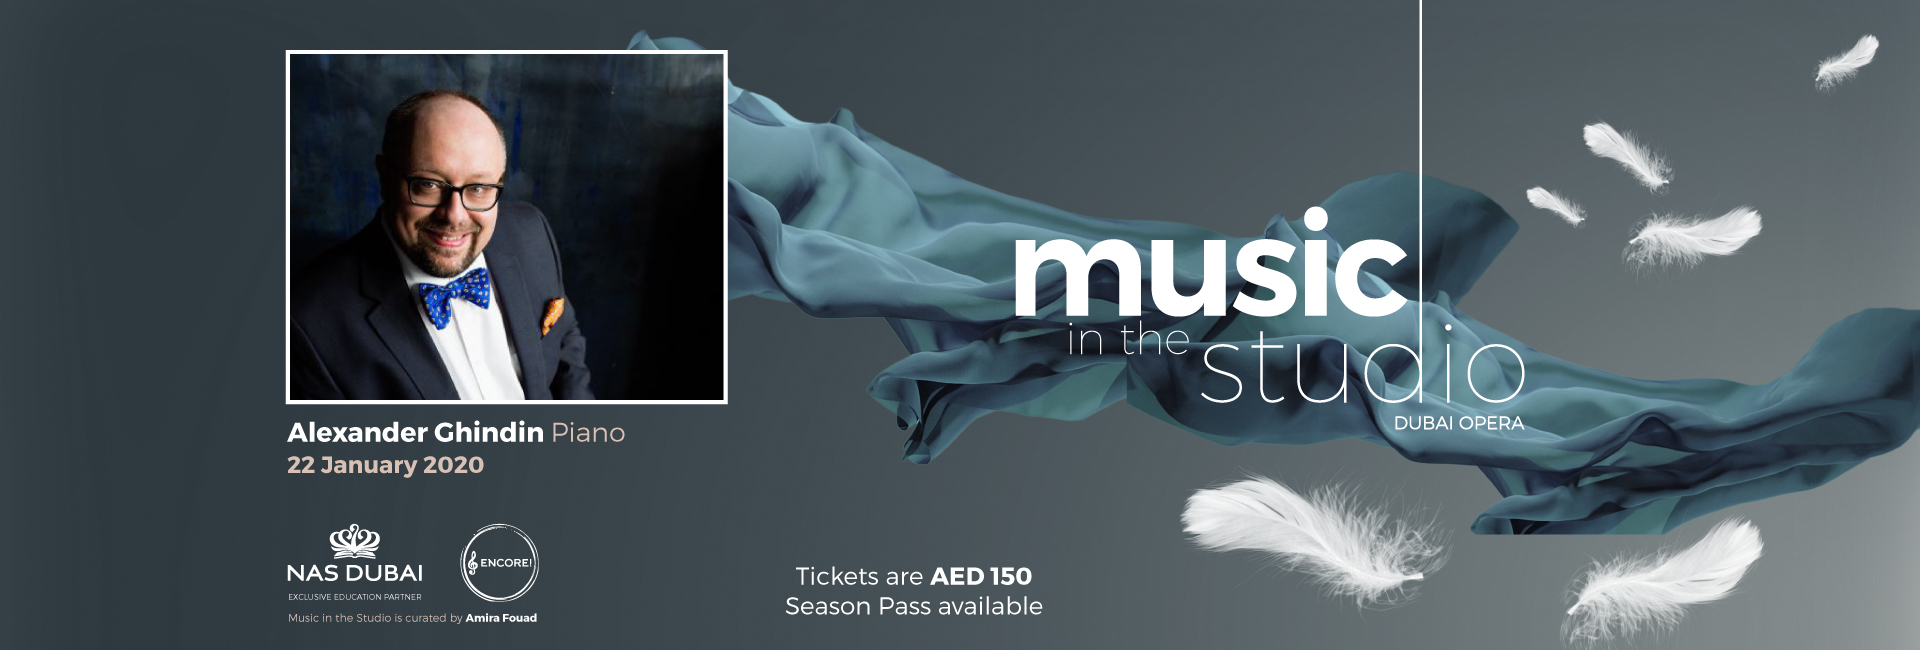 Music in the Studio: Alexander Ghindin on Jan 22nd at Dubai Opera 2020